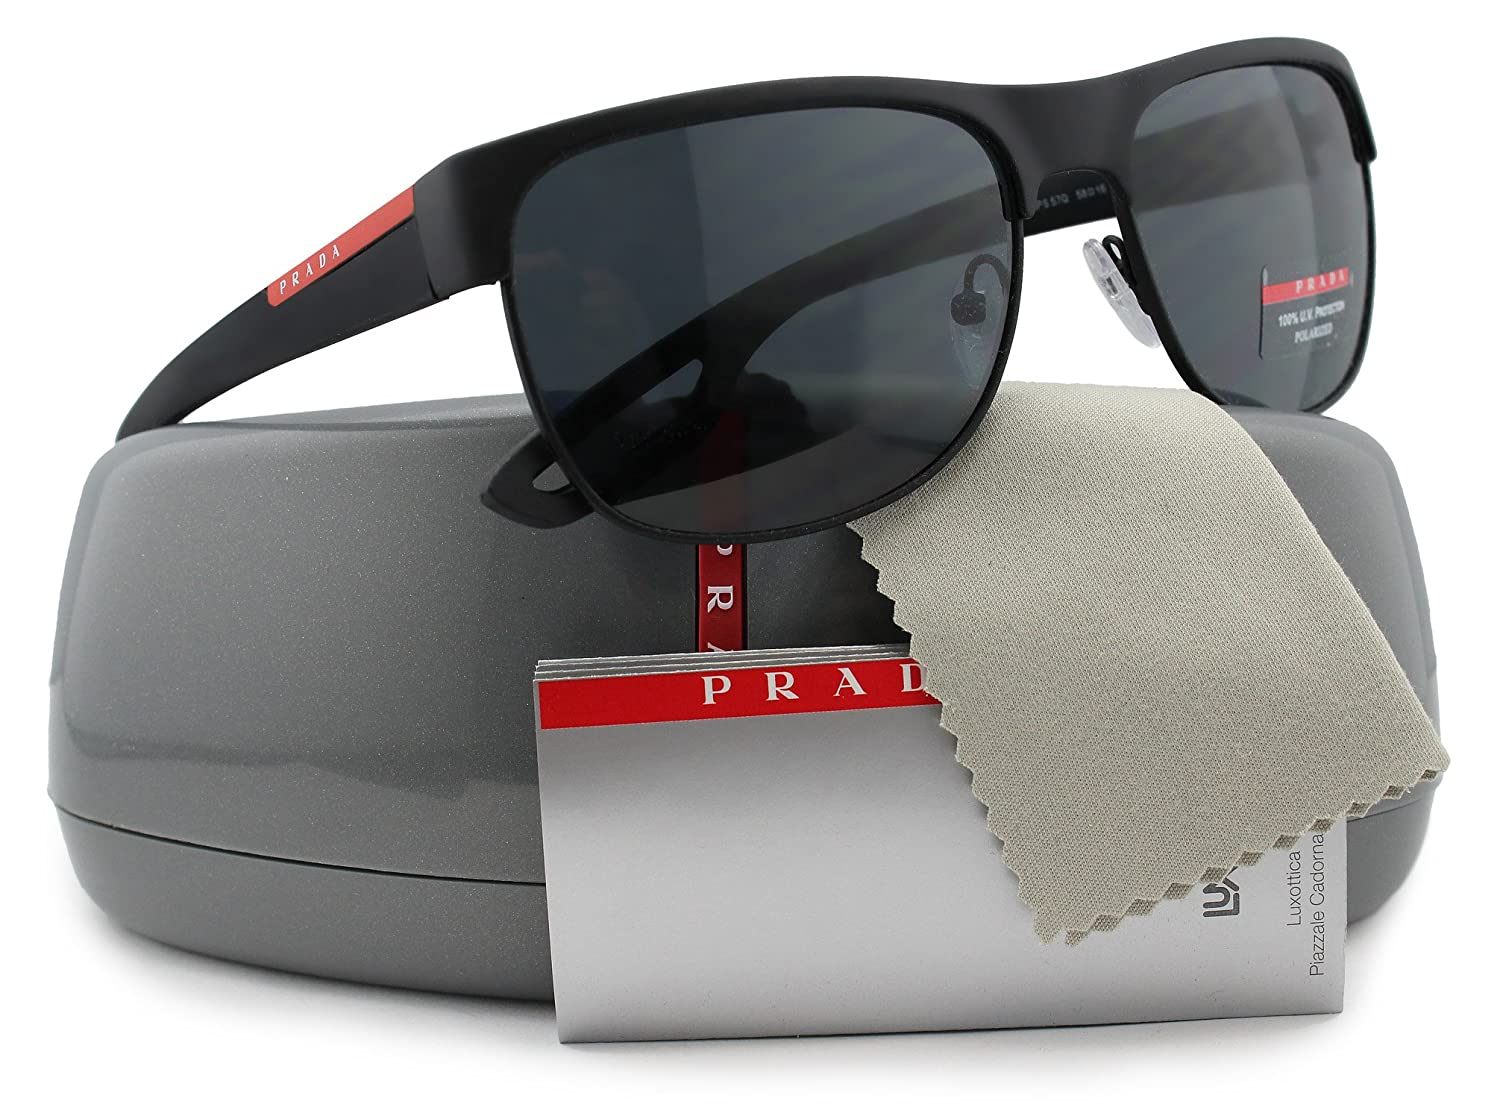 6137acd321b Prada Linea Rossa SPS57Q LJ Silver Polarized Sunglasses Black Rubber w  Crystal Grey (DG0-5Z1) PS 57QS DG05Z1 58mm Authentic  Amazon.co.uk  Clothing